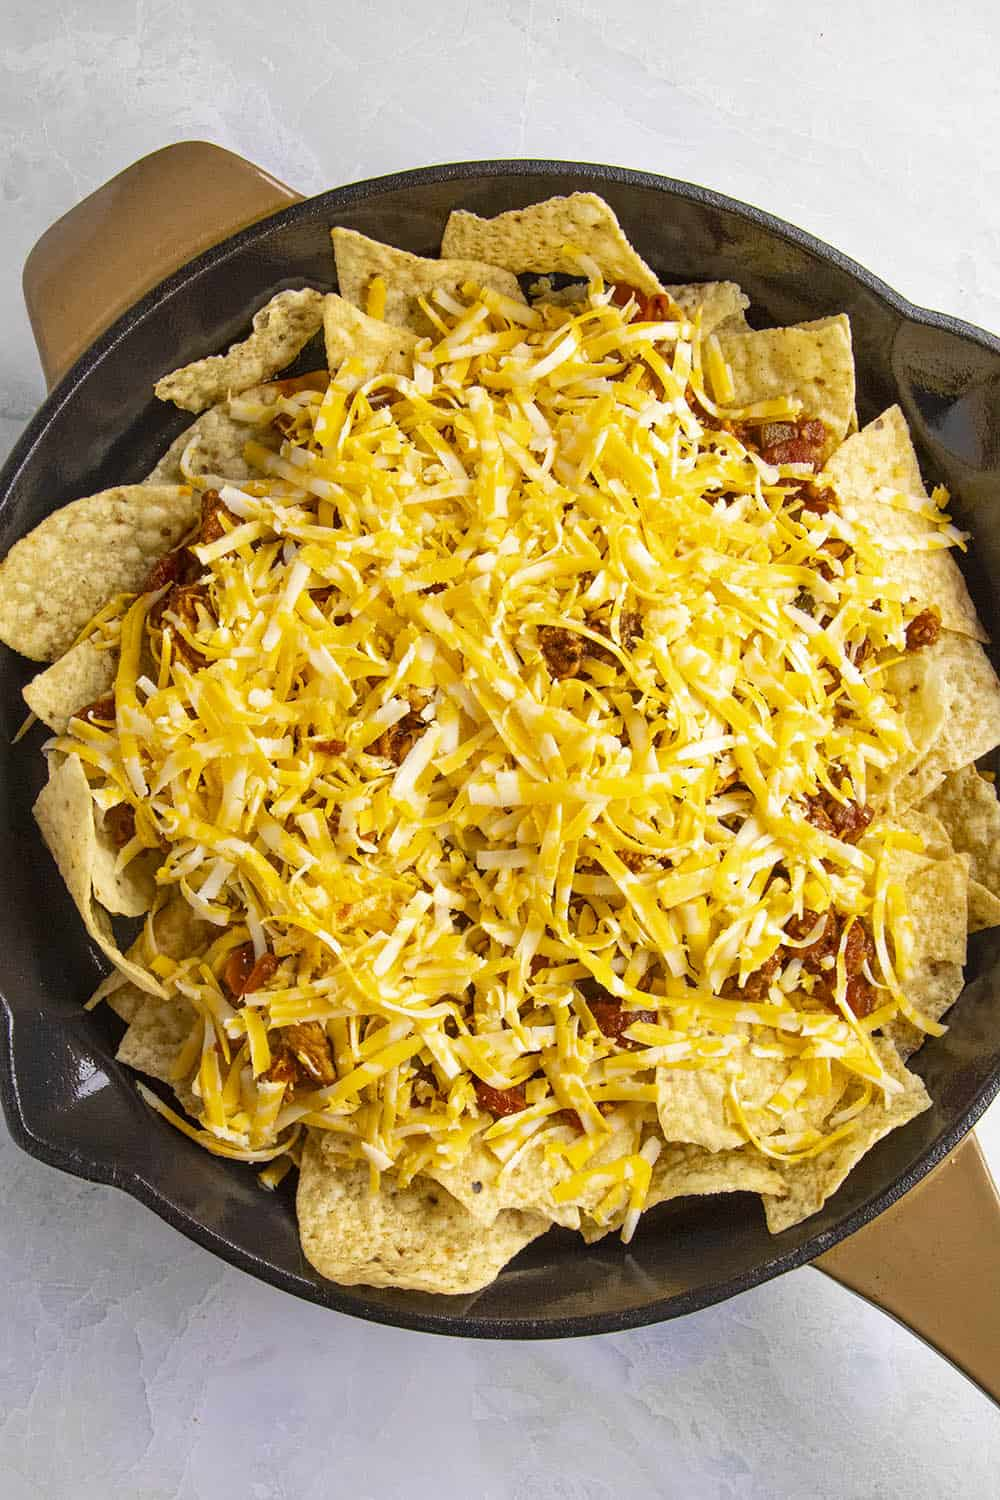 Add the shredded cheese over the Chipotle Chicken Nachos